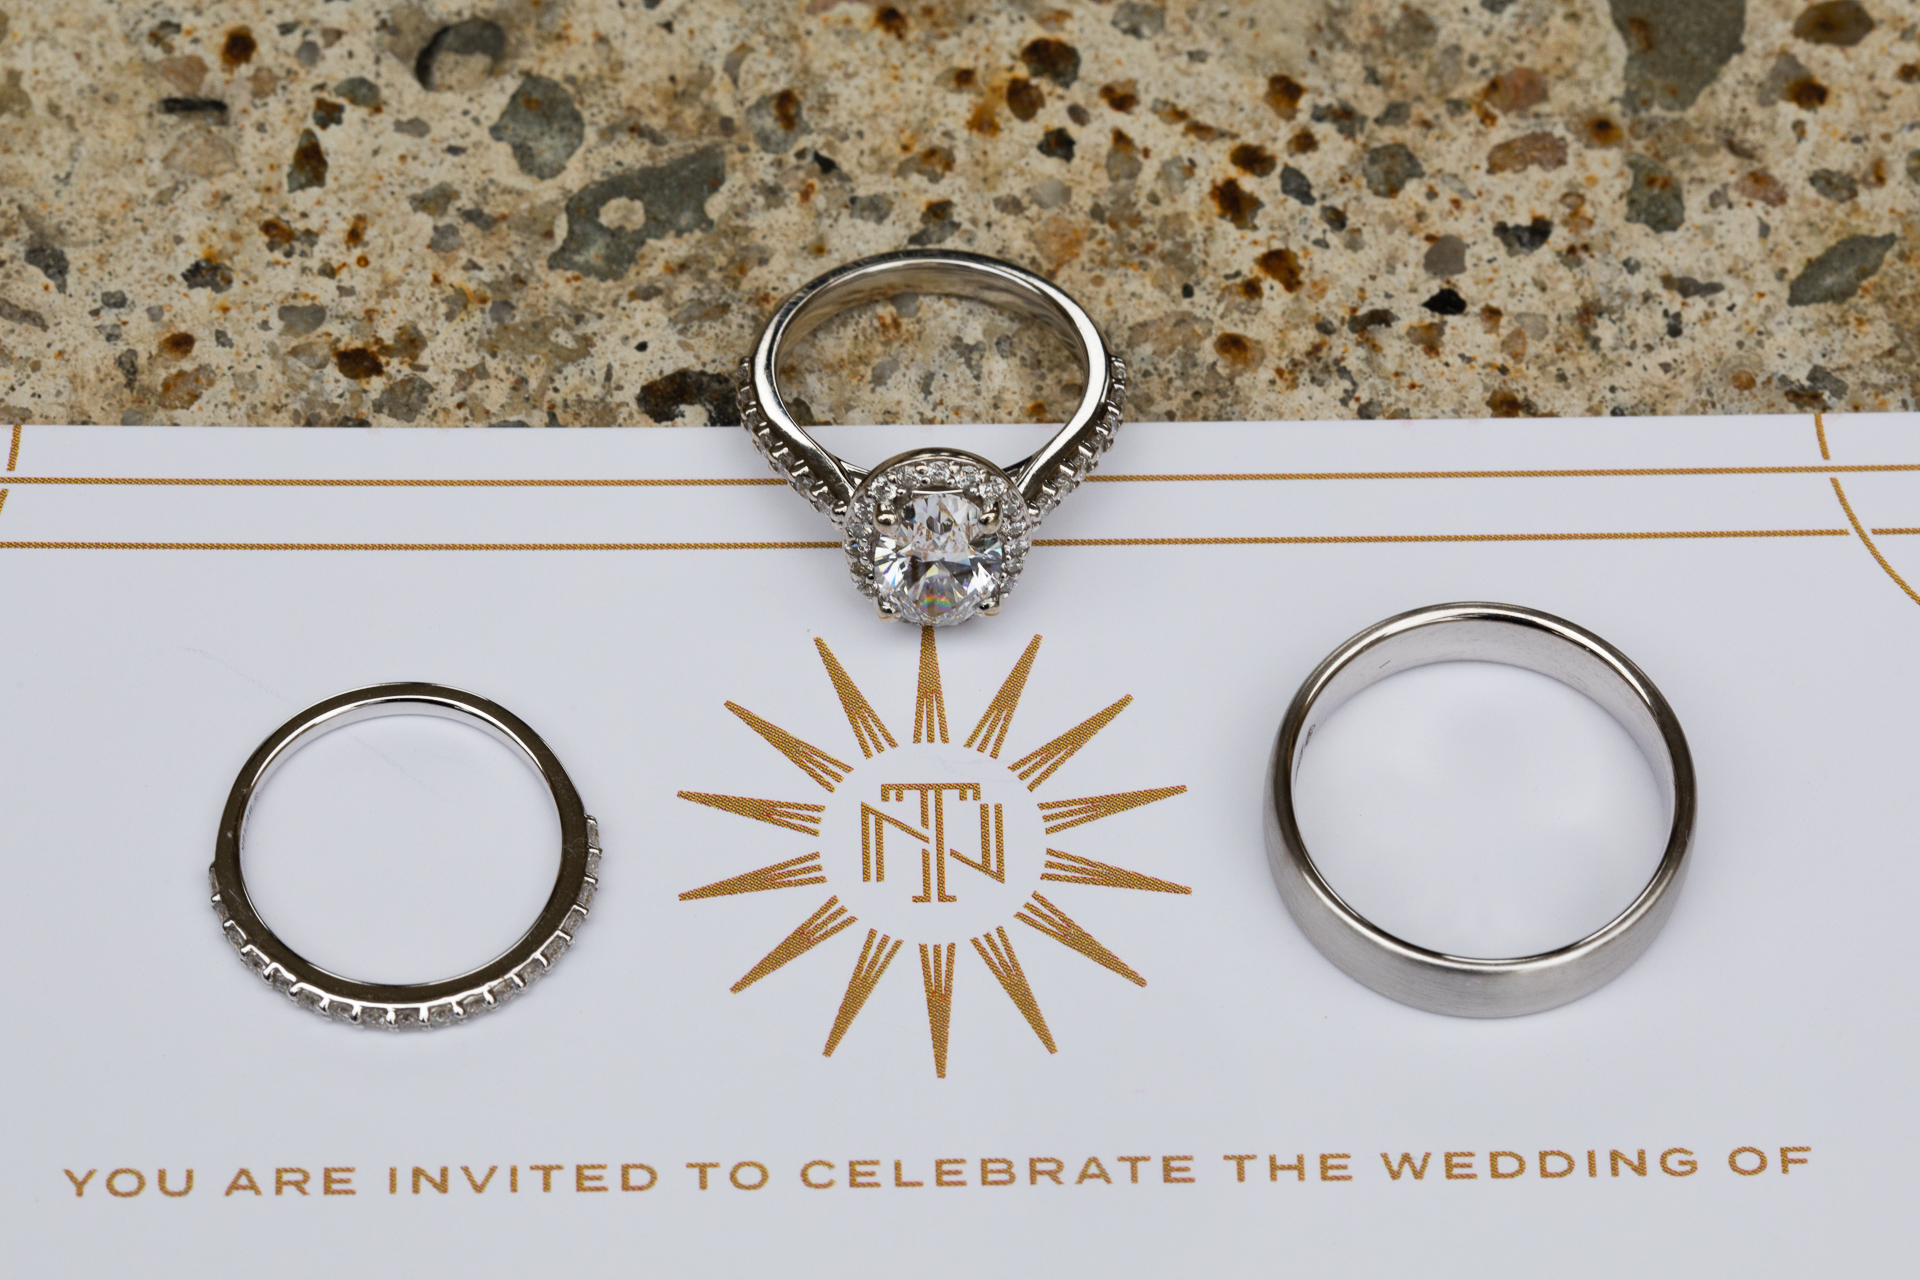 Wedding rings and custom invitation